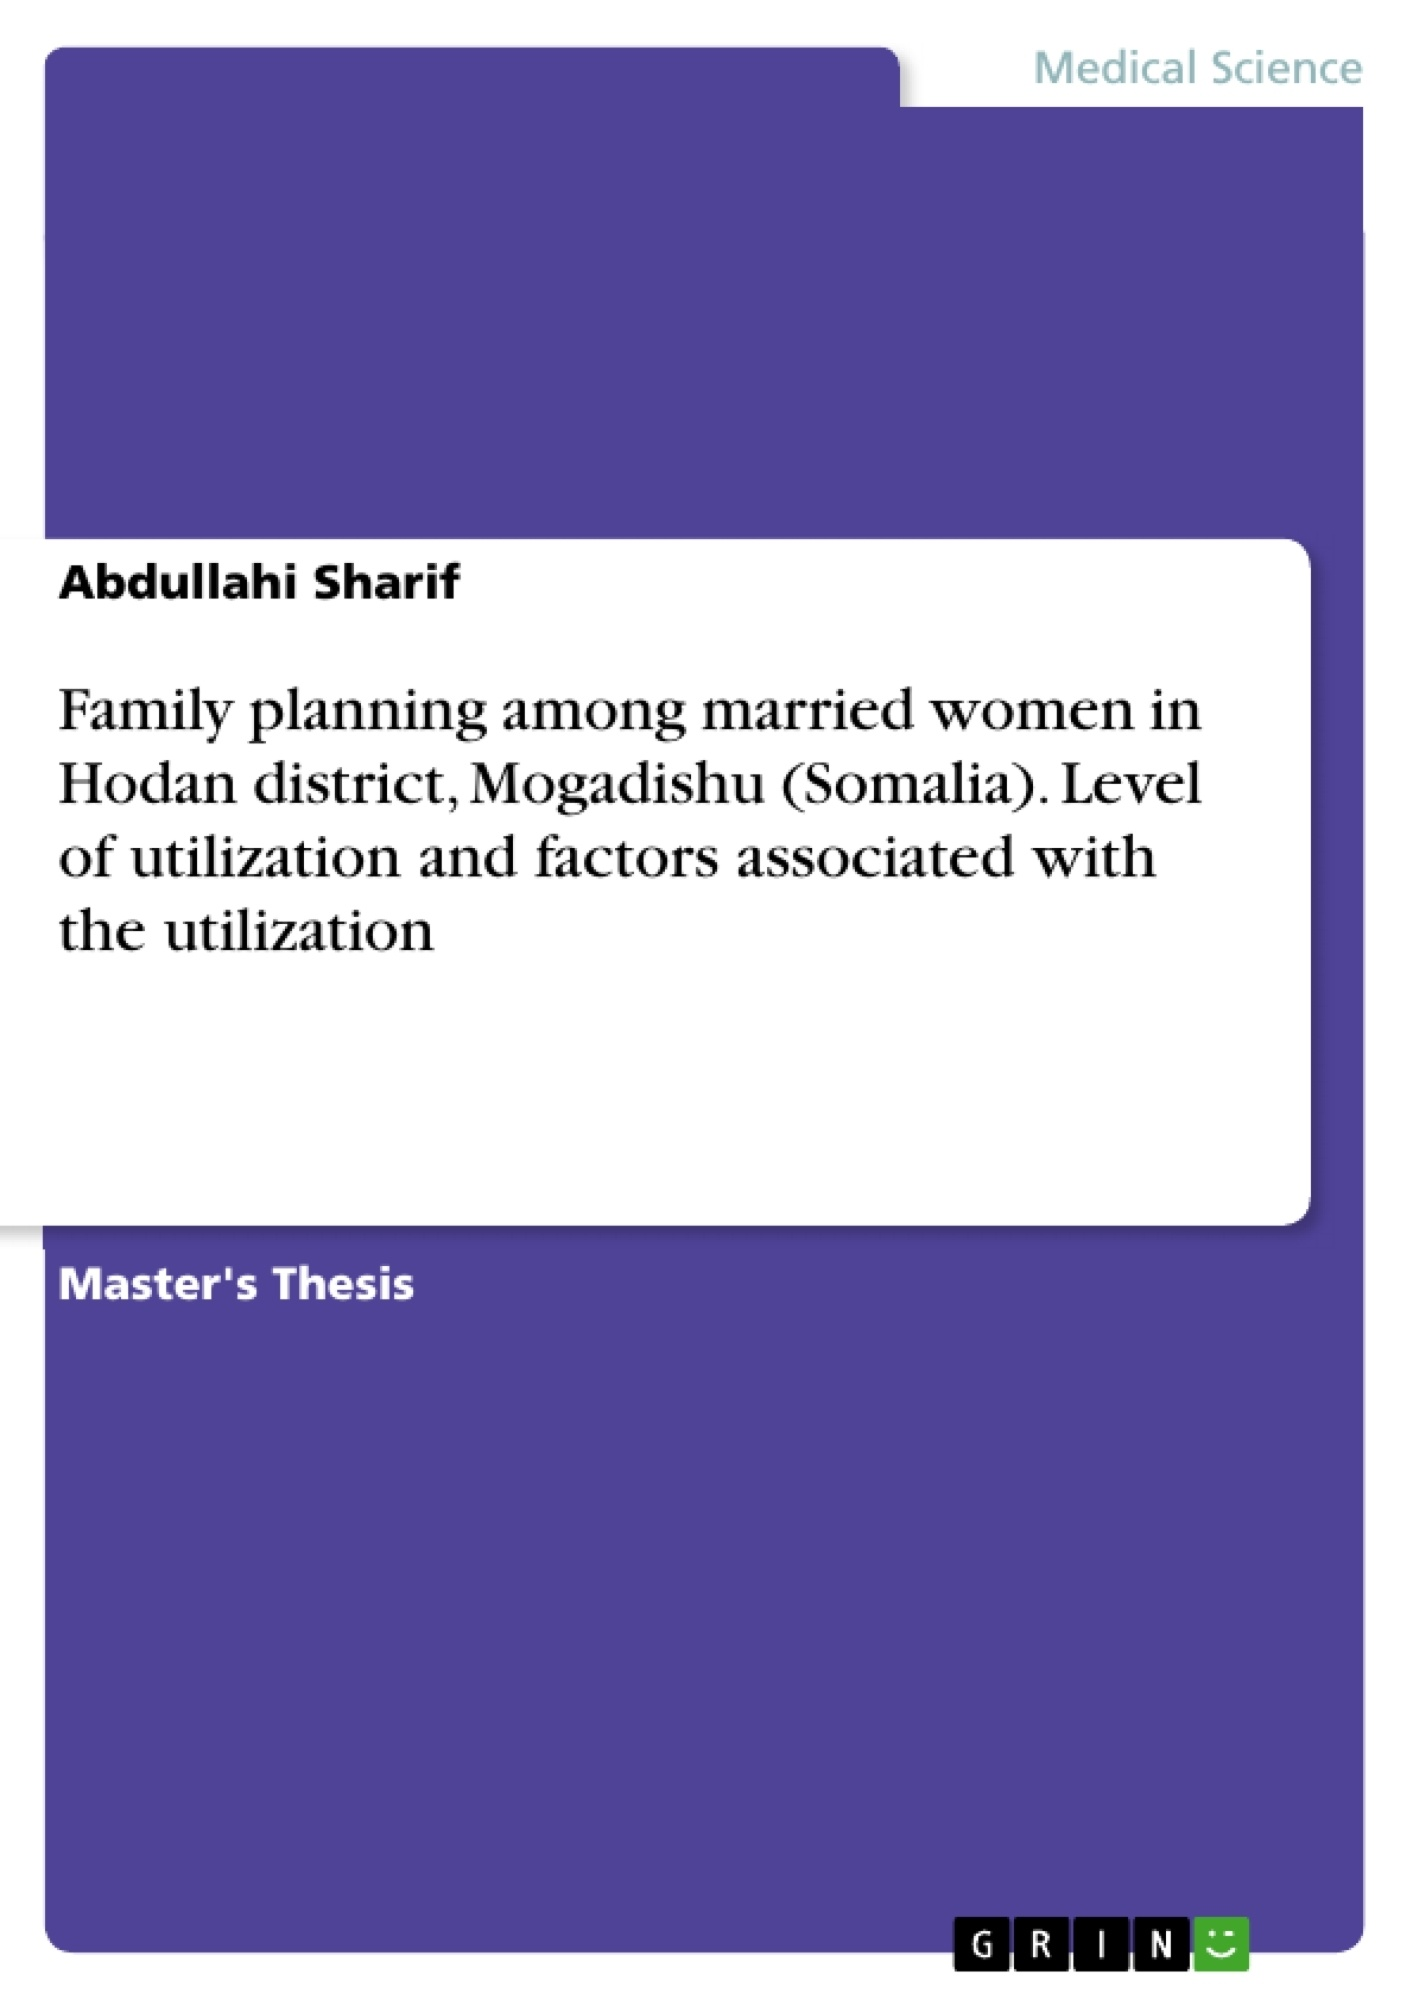 Title: Family planning among married women in Hodan district, Mogadishu (Somalia). Level of utilization and factors associated with the utilization